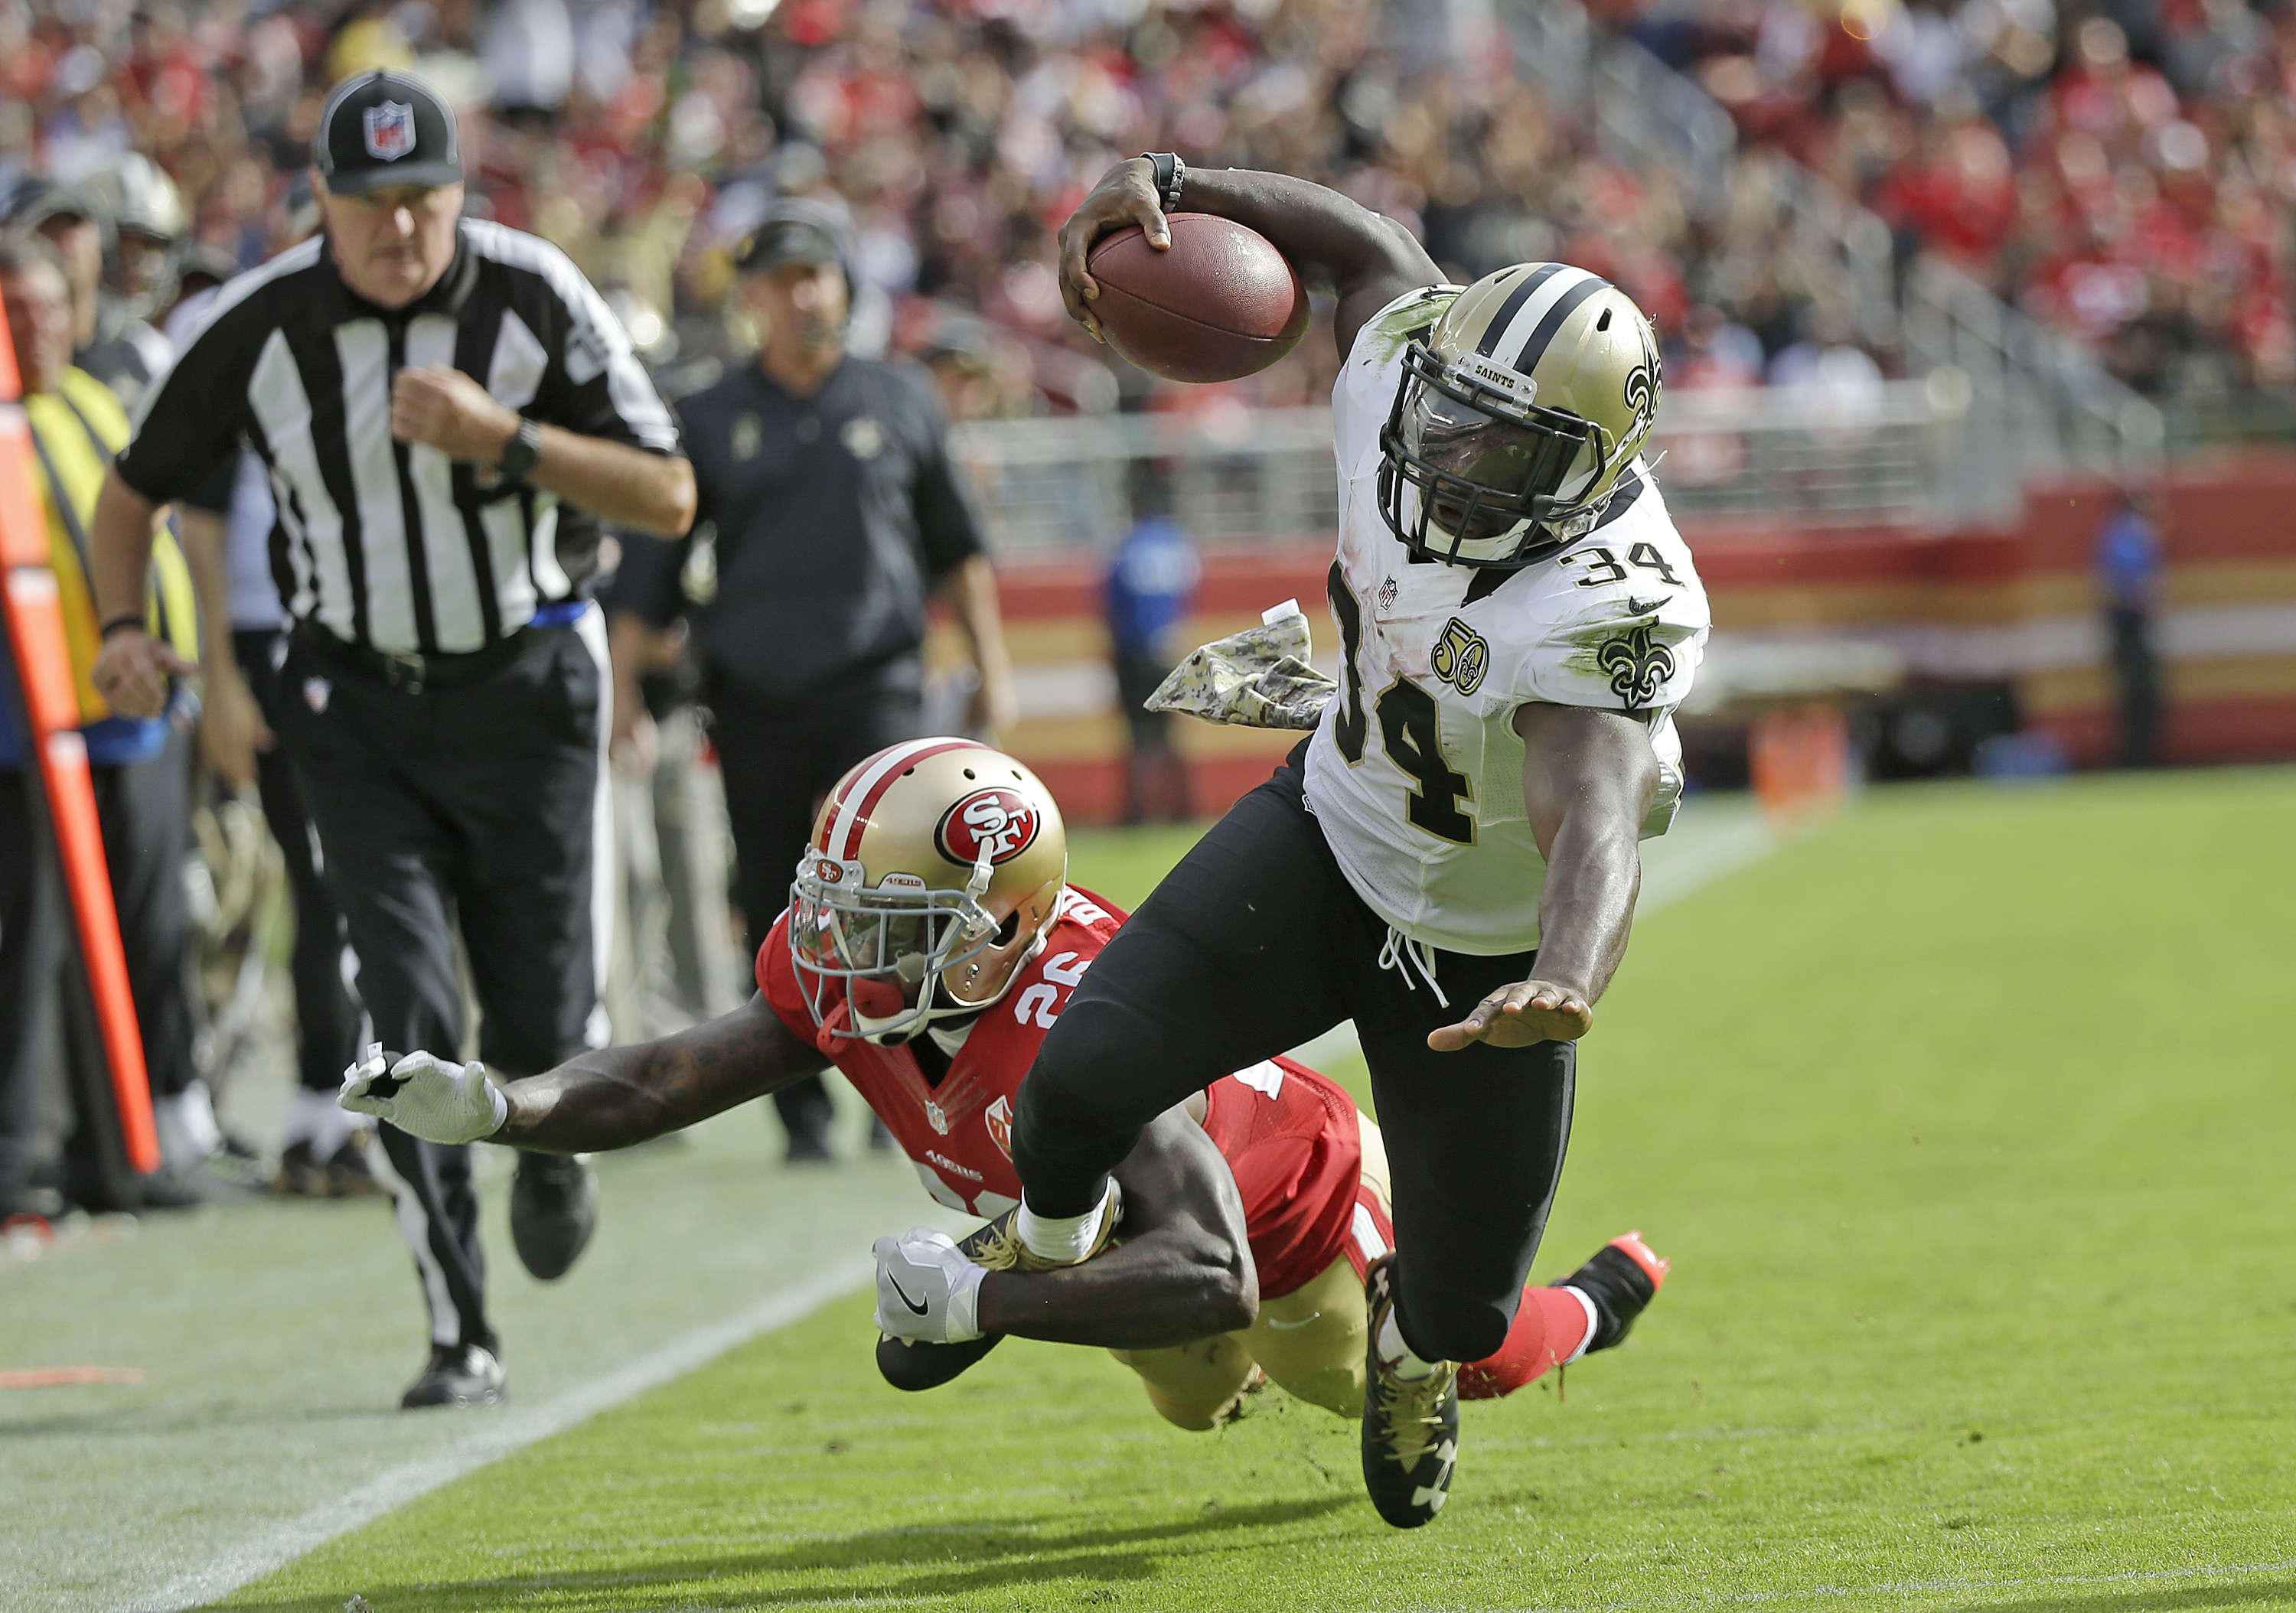 New Orleans Saints running back Tim Hightower goes tumbling with ball while being stopped by San Francisco 49ers cornerback Tramaine Brock, left, during the first half of an NFL football game Sunday, Nov. 6, 2016, in Santa Clara, Calif. (AP Photo/Tony Ave